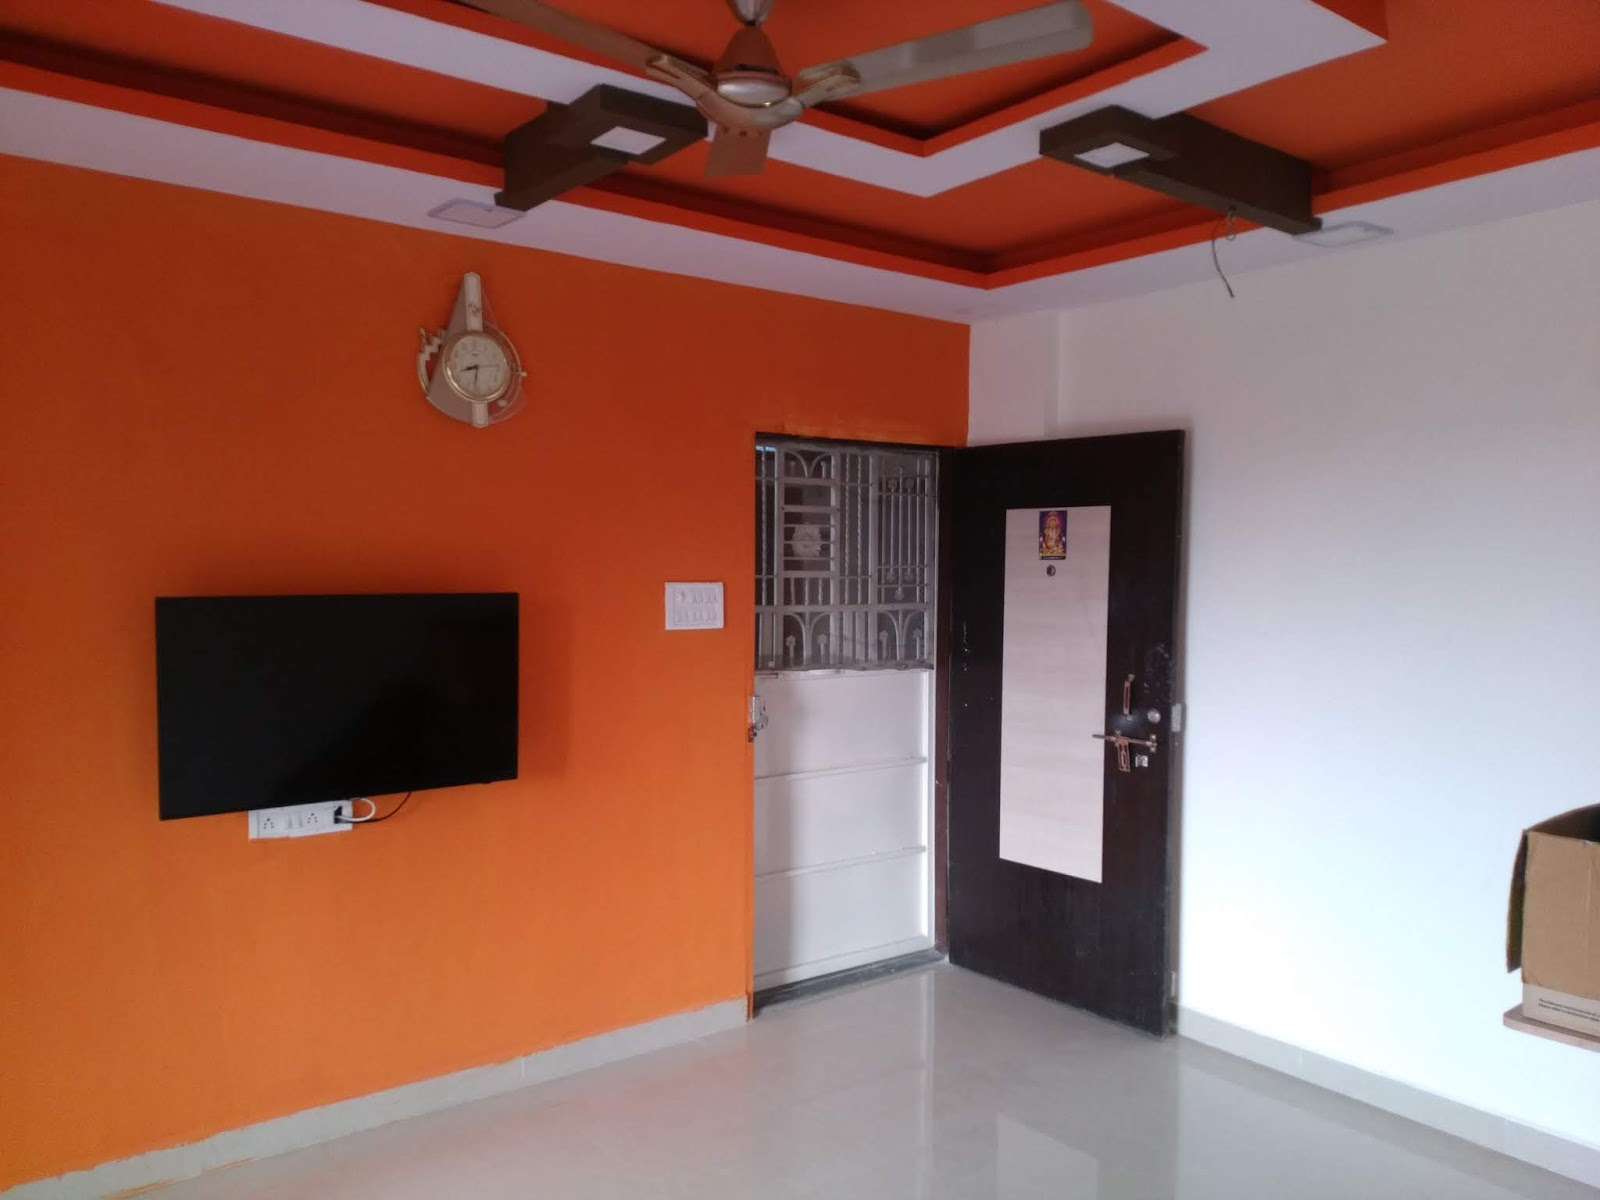 1 Bhk Flat For Sell In Lohegaon Pune 1 2 3 4 Bhk Flats Rent Sale Buy In Kharadi Pune